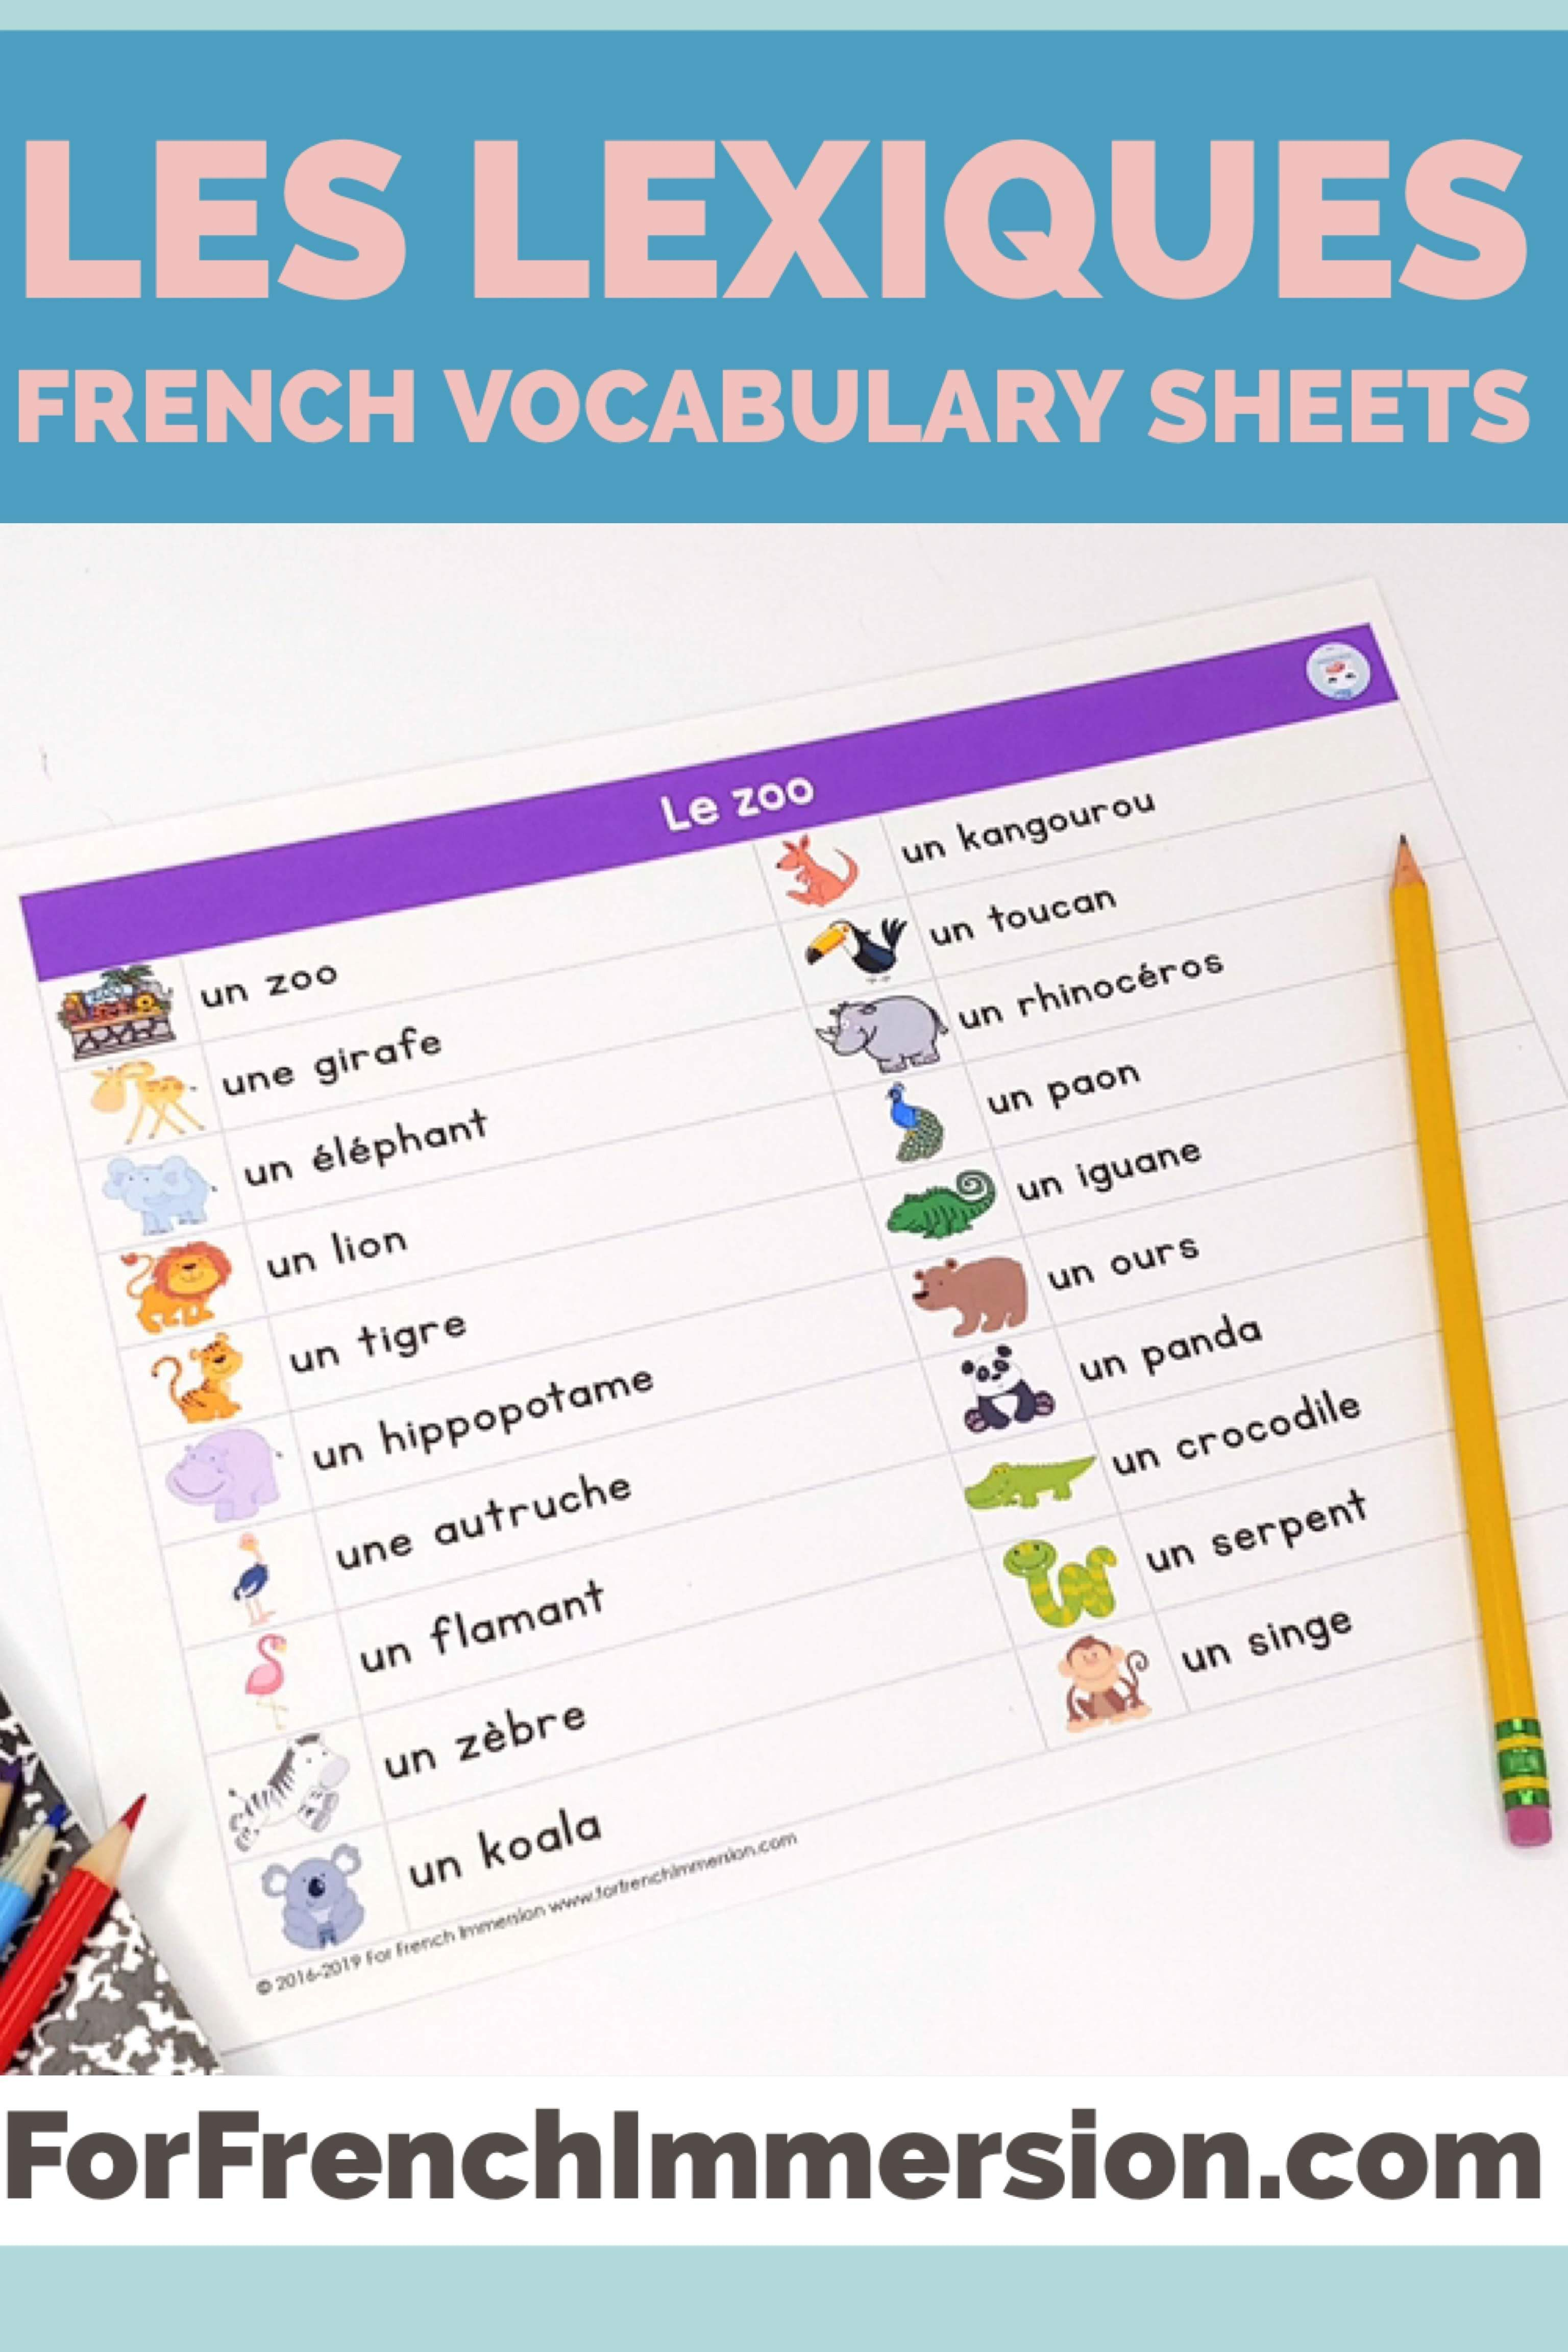 FREE French Vocabulary Sheets: des lexiques - For French Immersion   French  vocabulary [ 4608 x 3072 Pixel ]